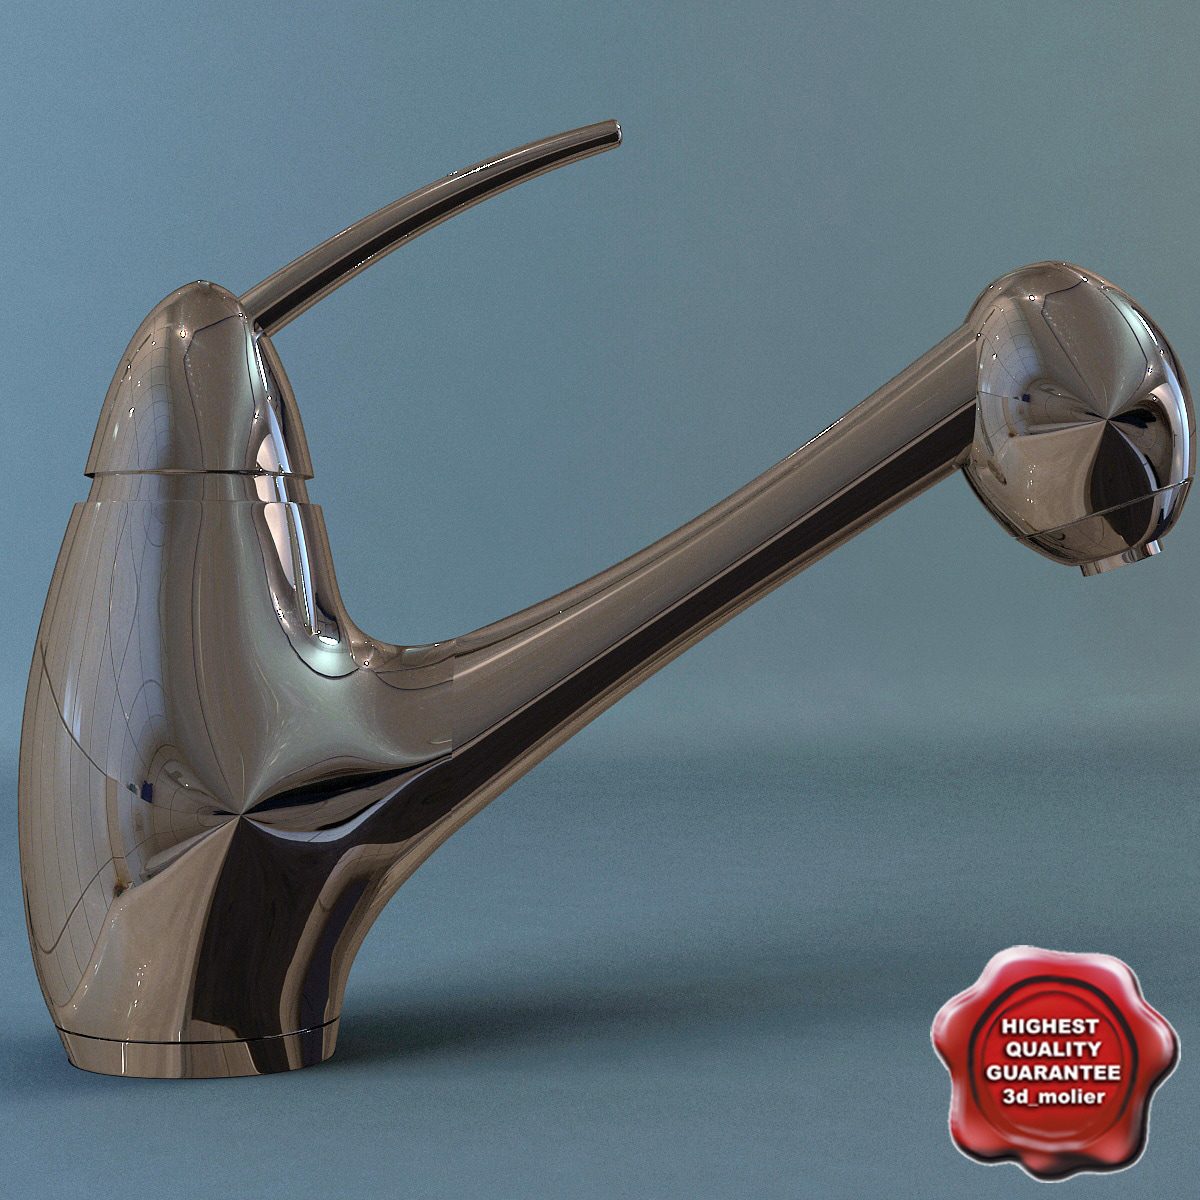 3d bathroom mixer vivaldi model